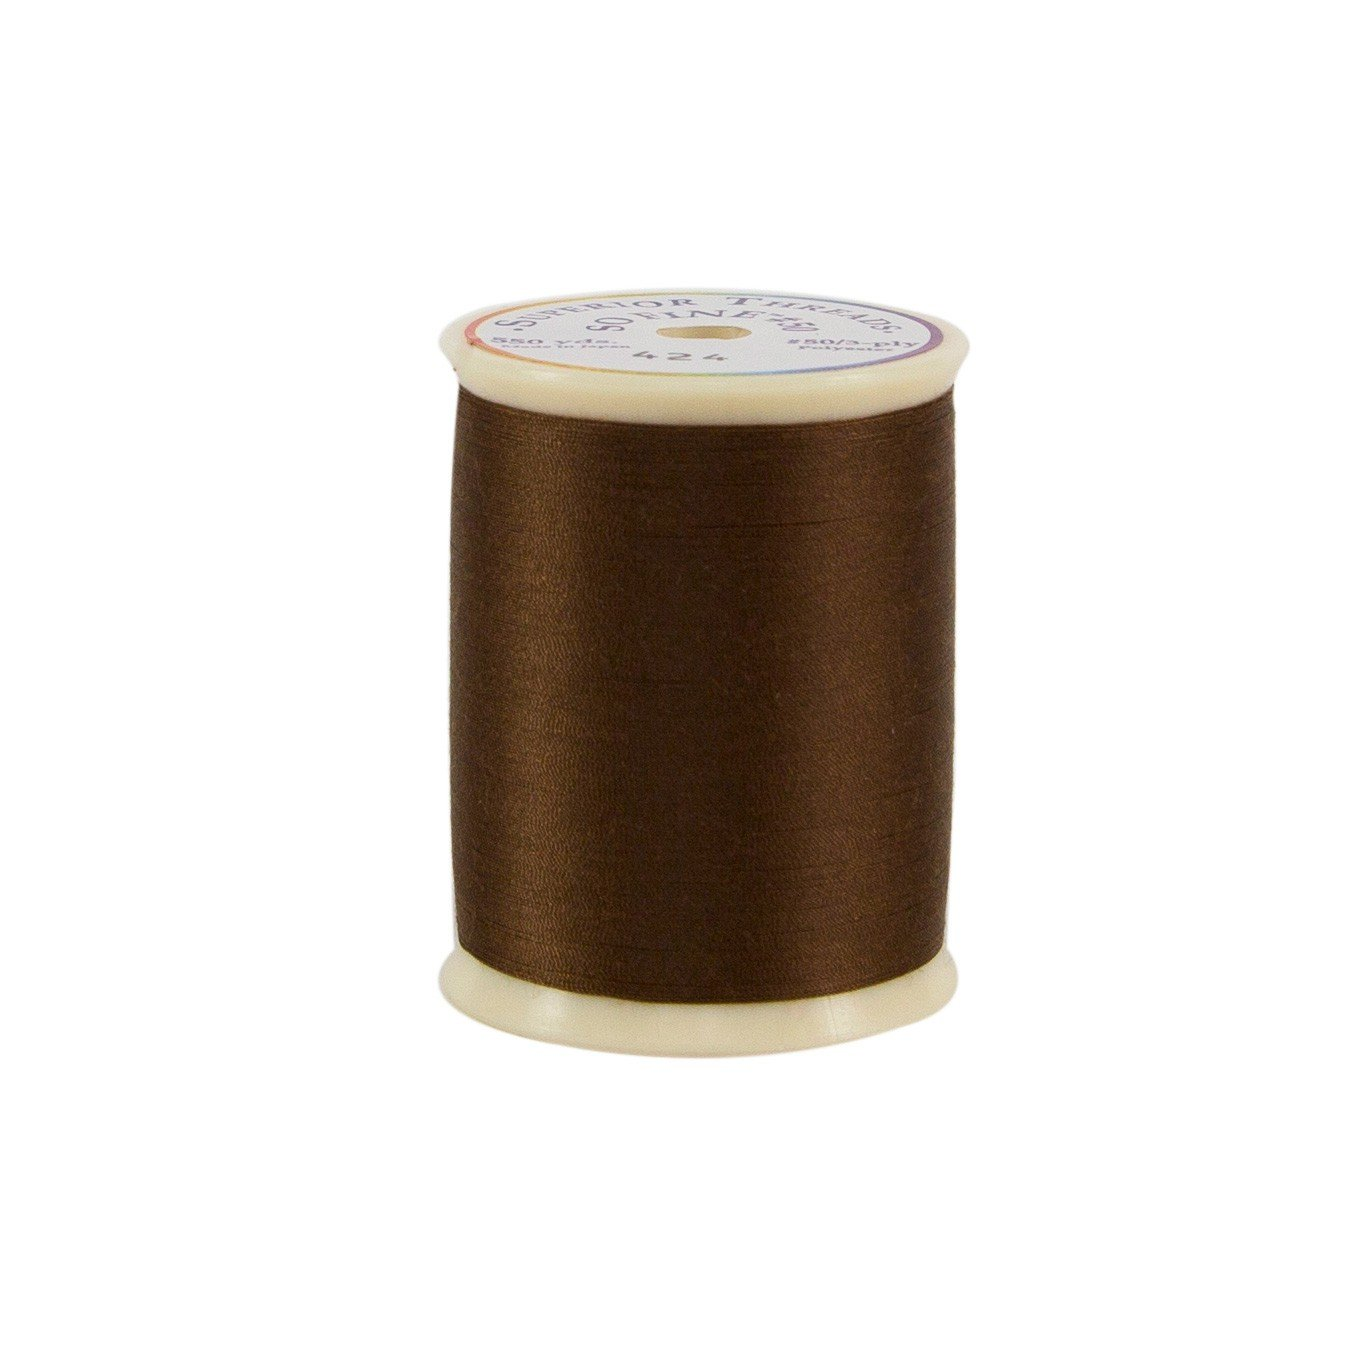 Superior Threads and Quilting Smooth Polyester Sewing Thread for Serger Bobbin Thread 550 Yds. So Fine #471 Glacier